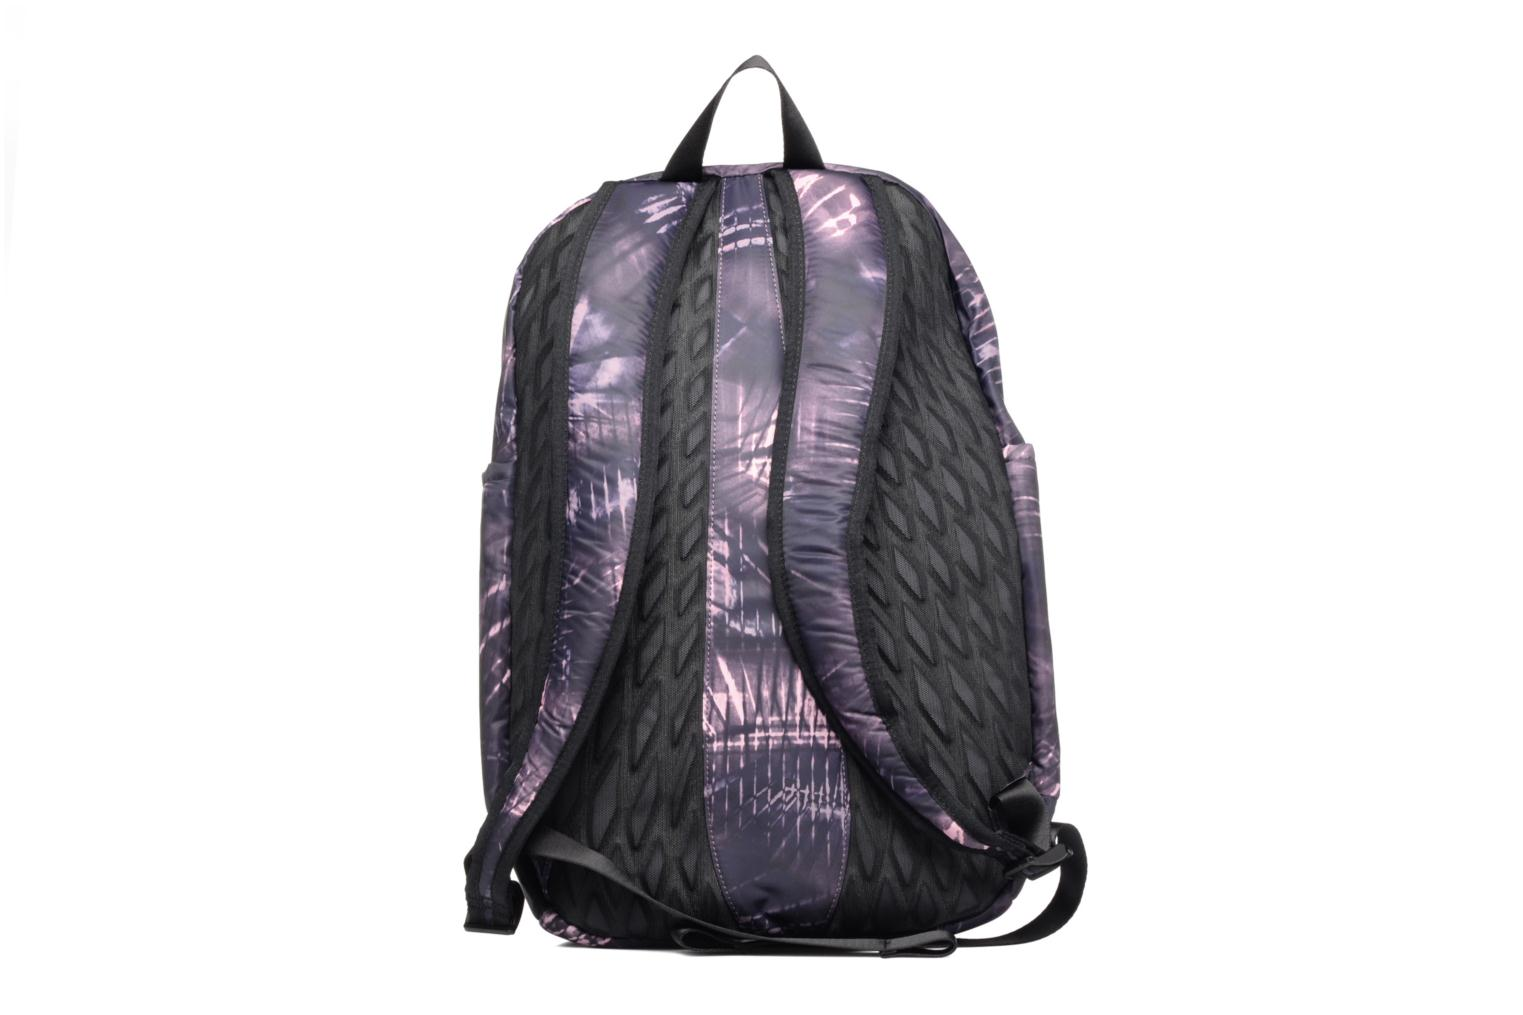 Rucksacks Nike Auralux backpack Sac à dos Purple front view